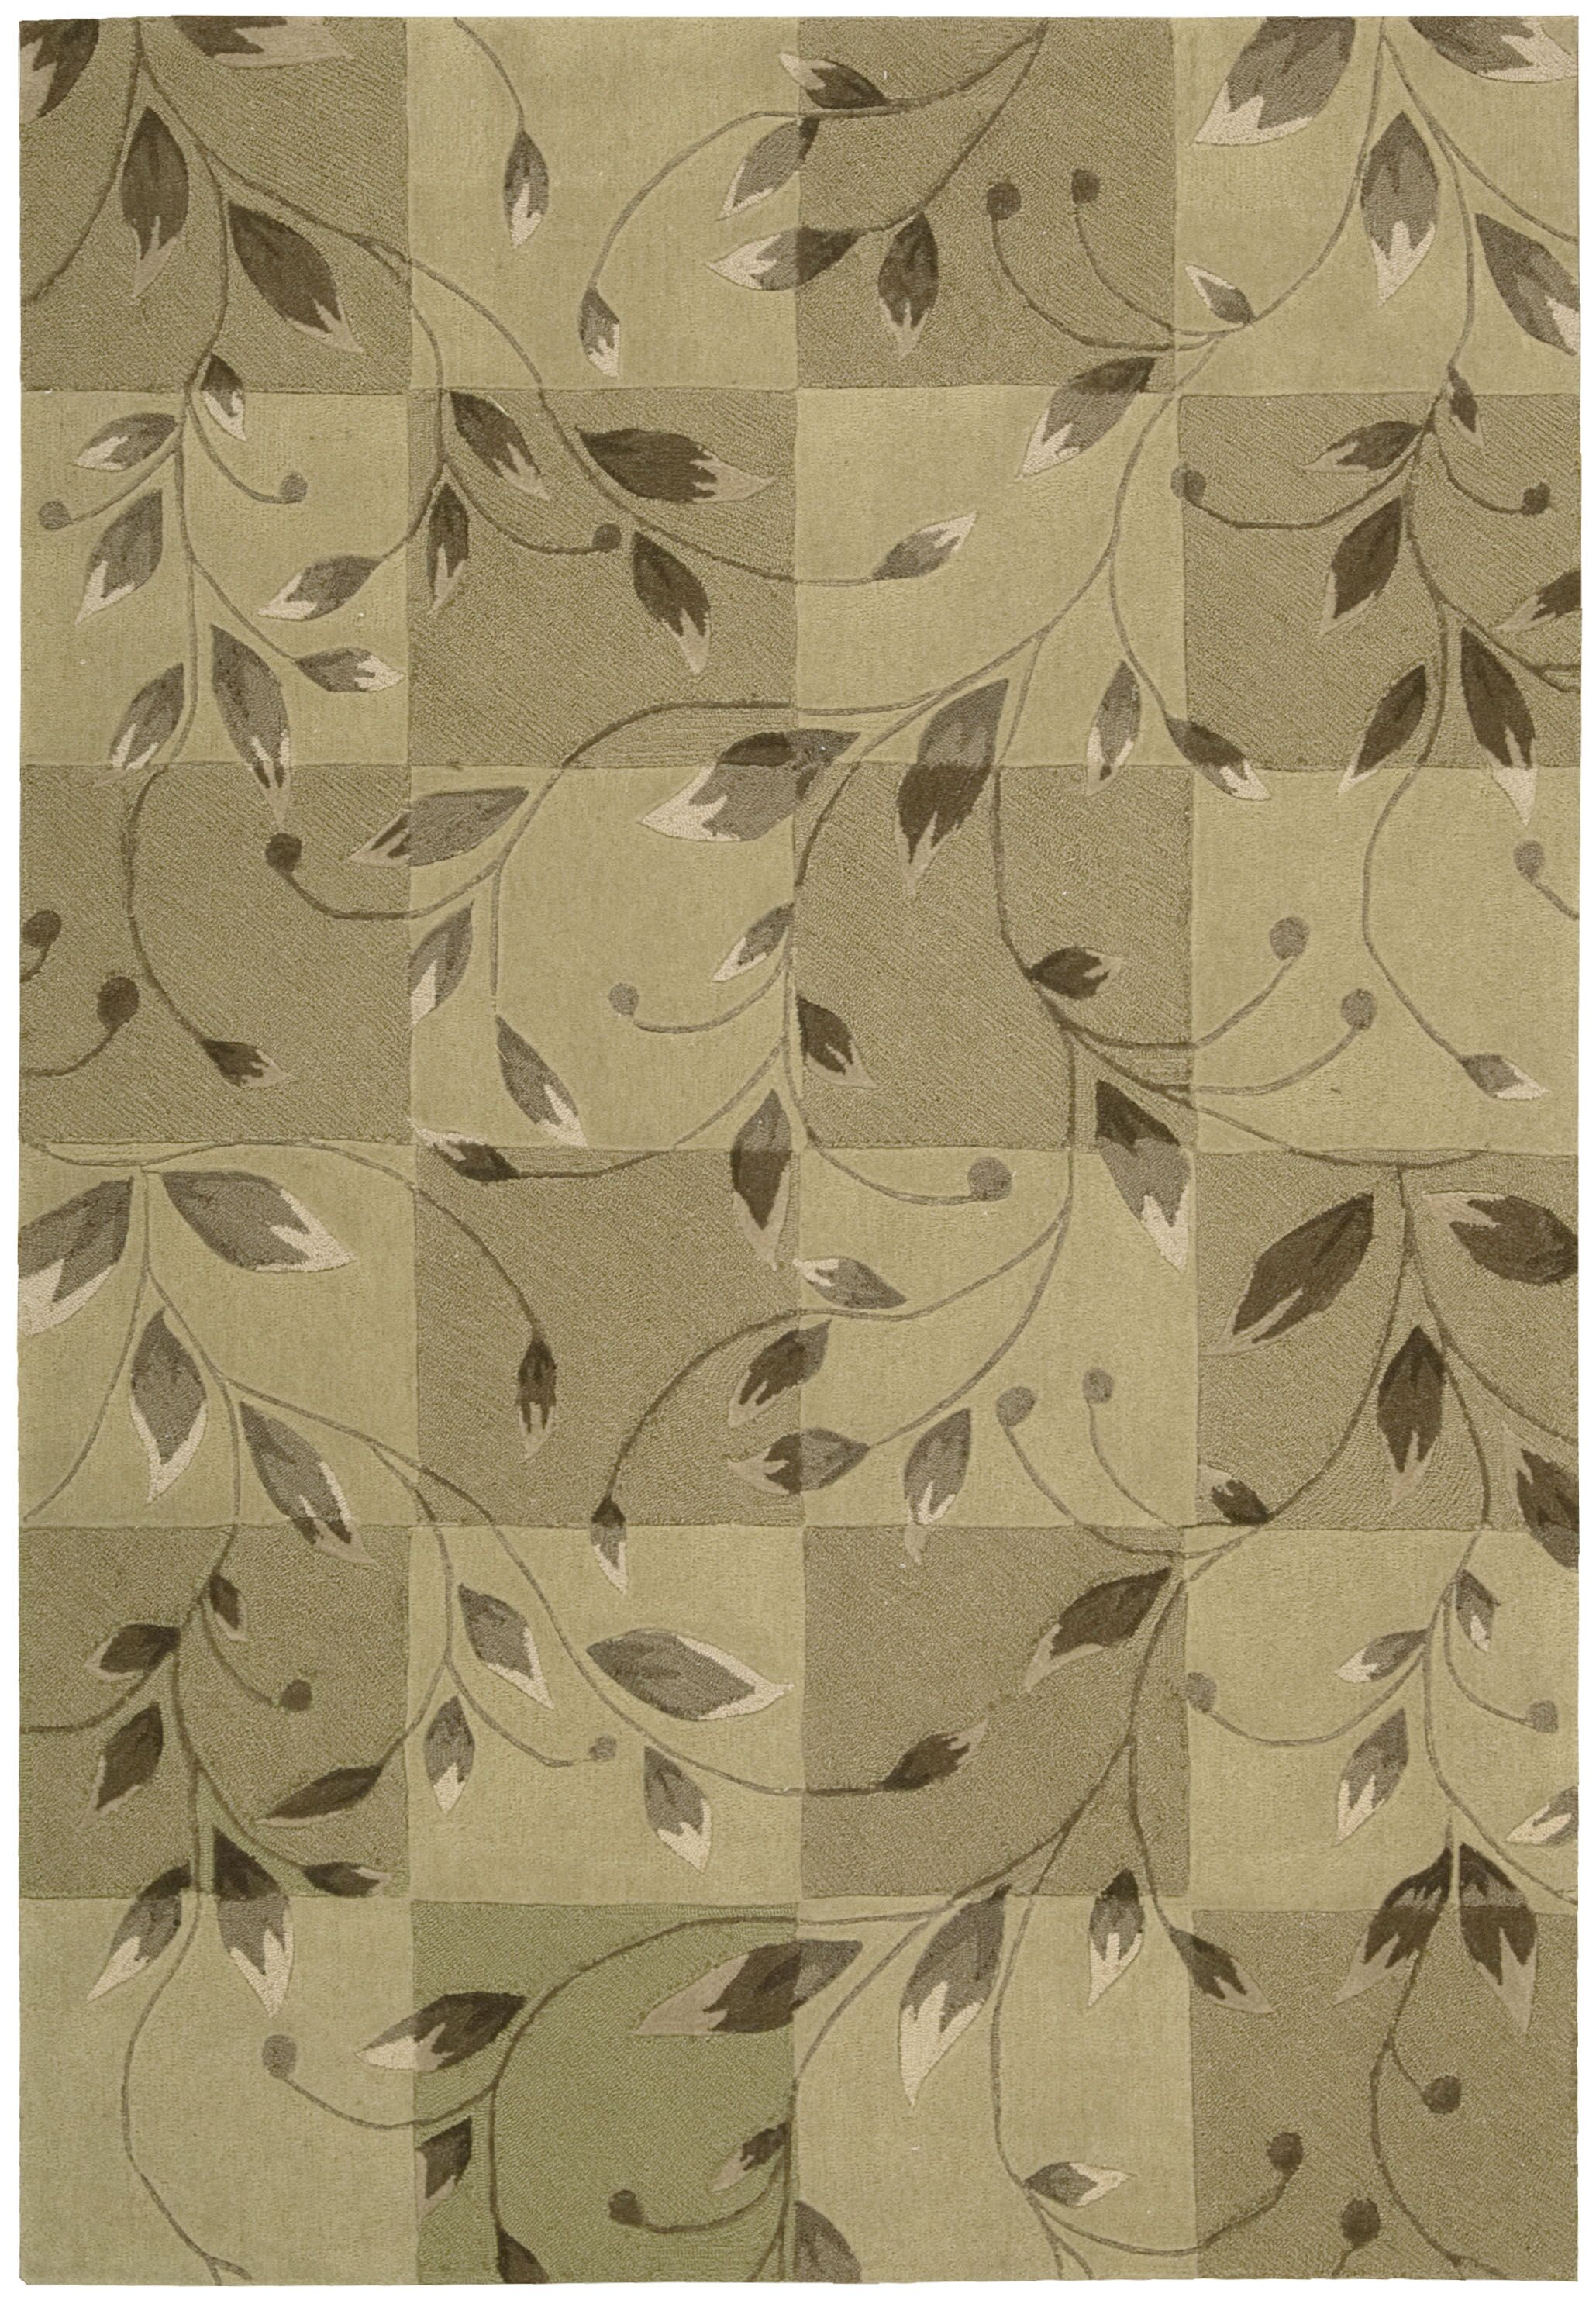 Kelsey Hand-Tufted Carmel Area Rug Rug Size: Rectangle 8' x 10'6